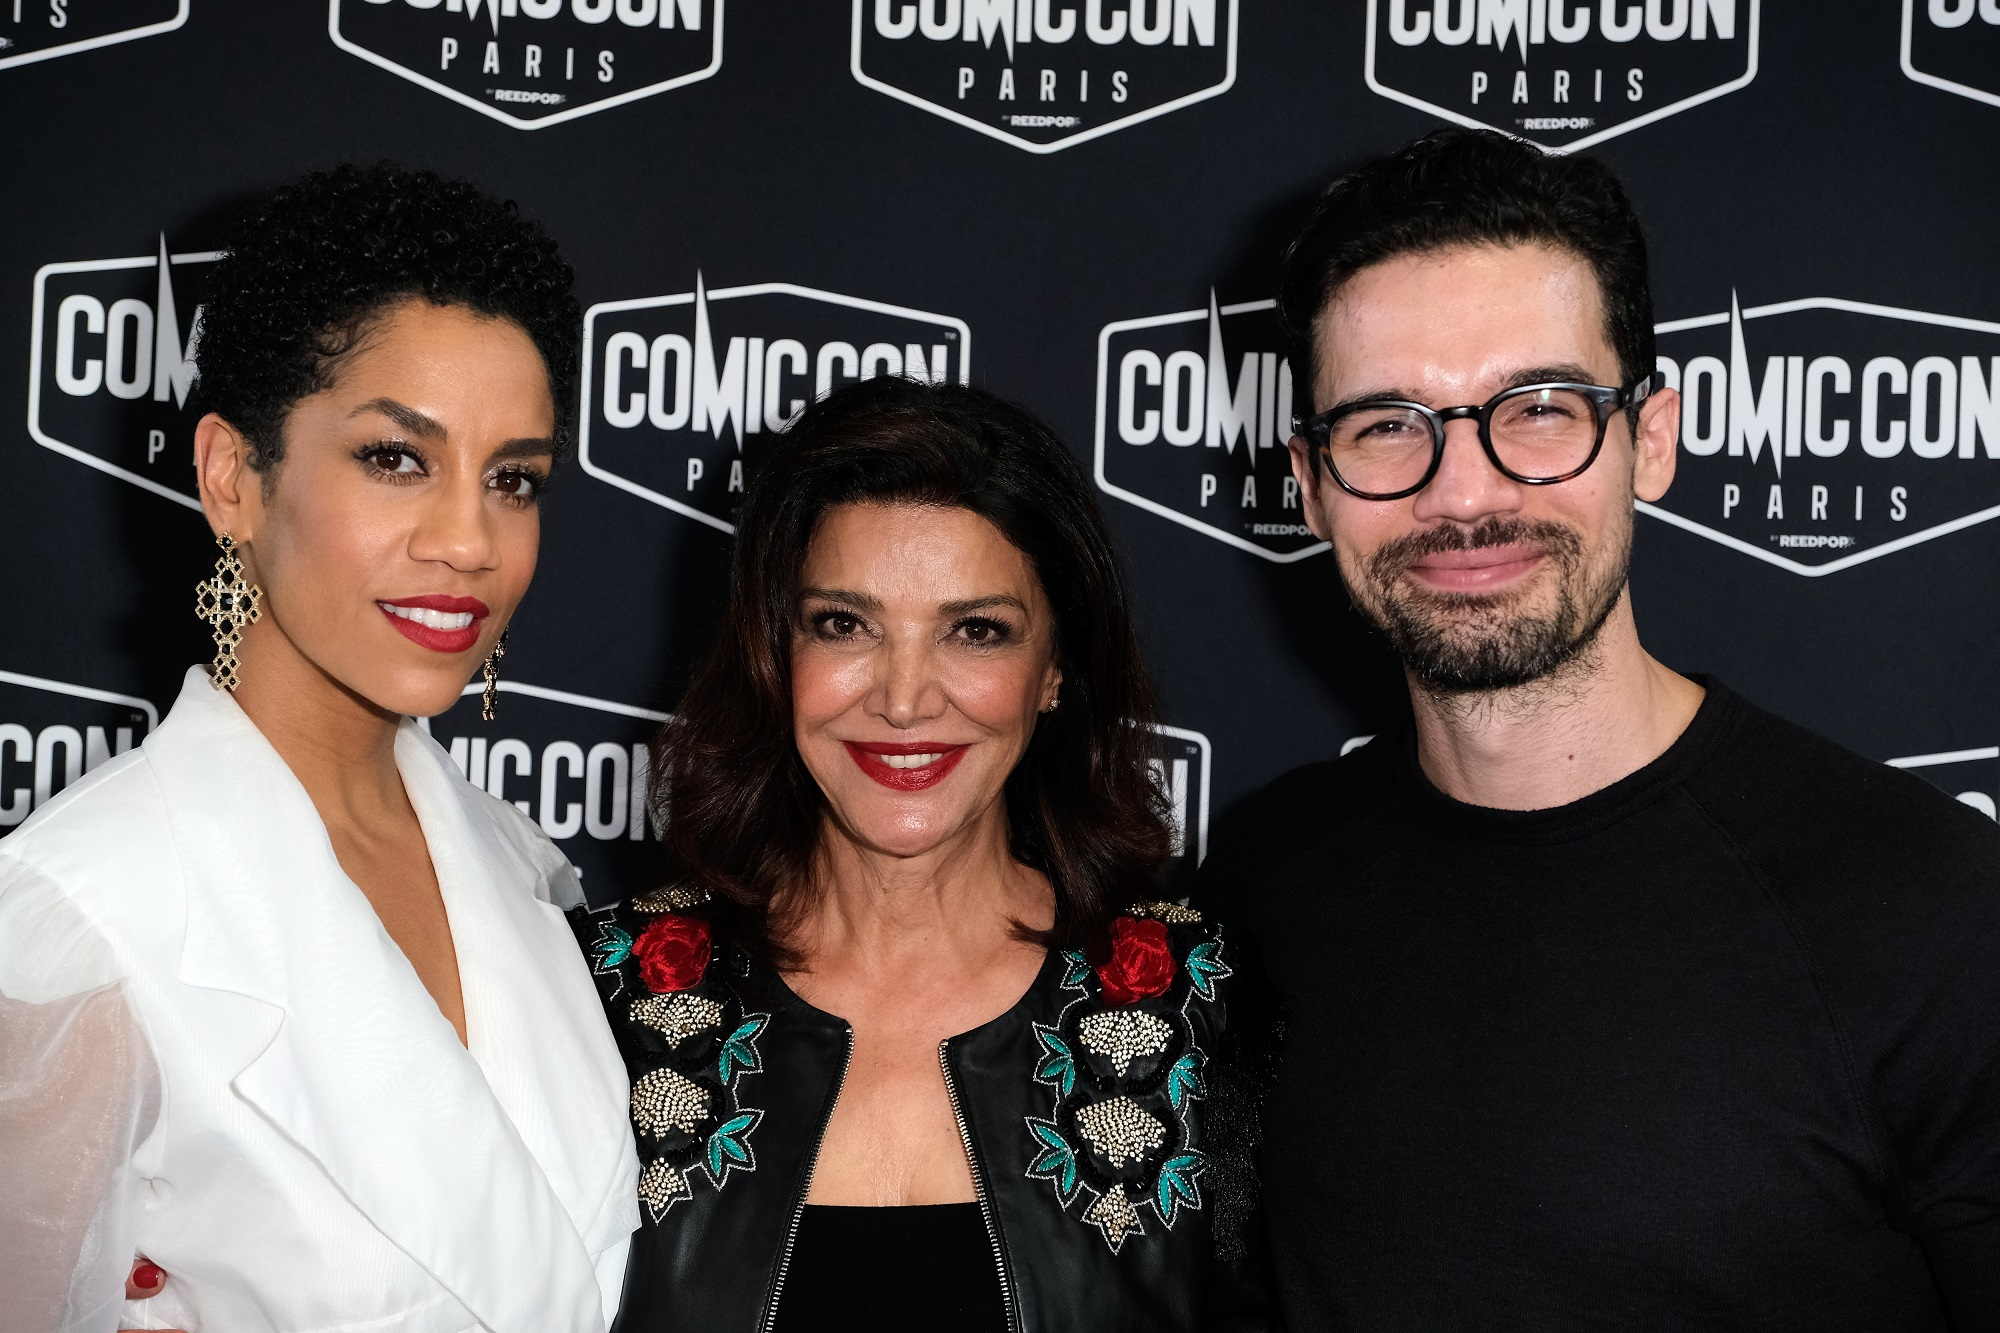 Dominique Tipper, Shohreh Aghdashloo, and Steven Strait  of The Expanse